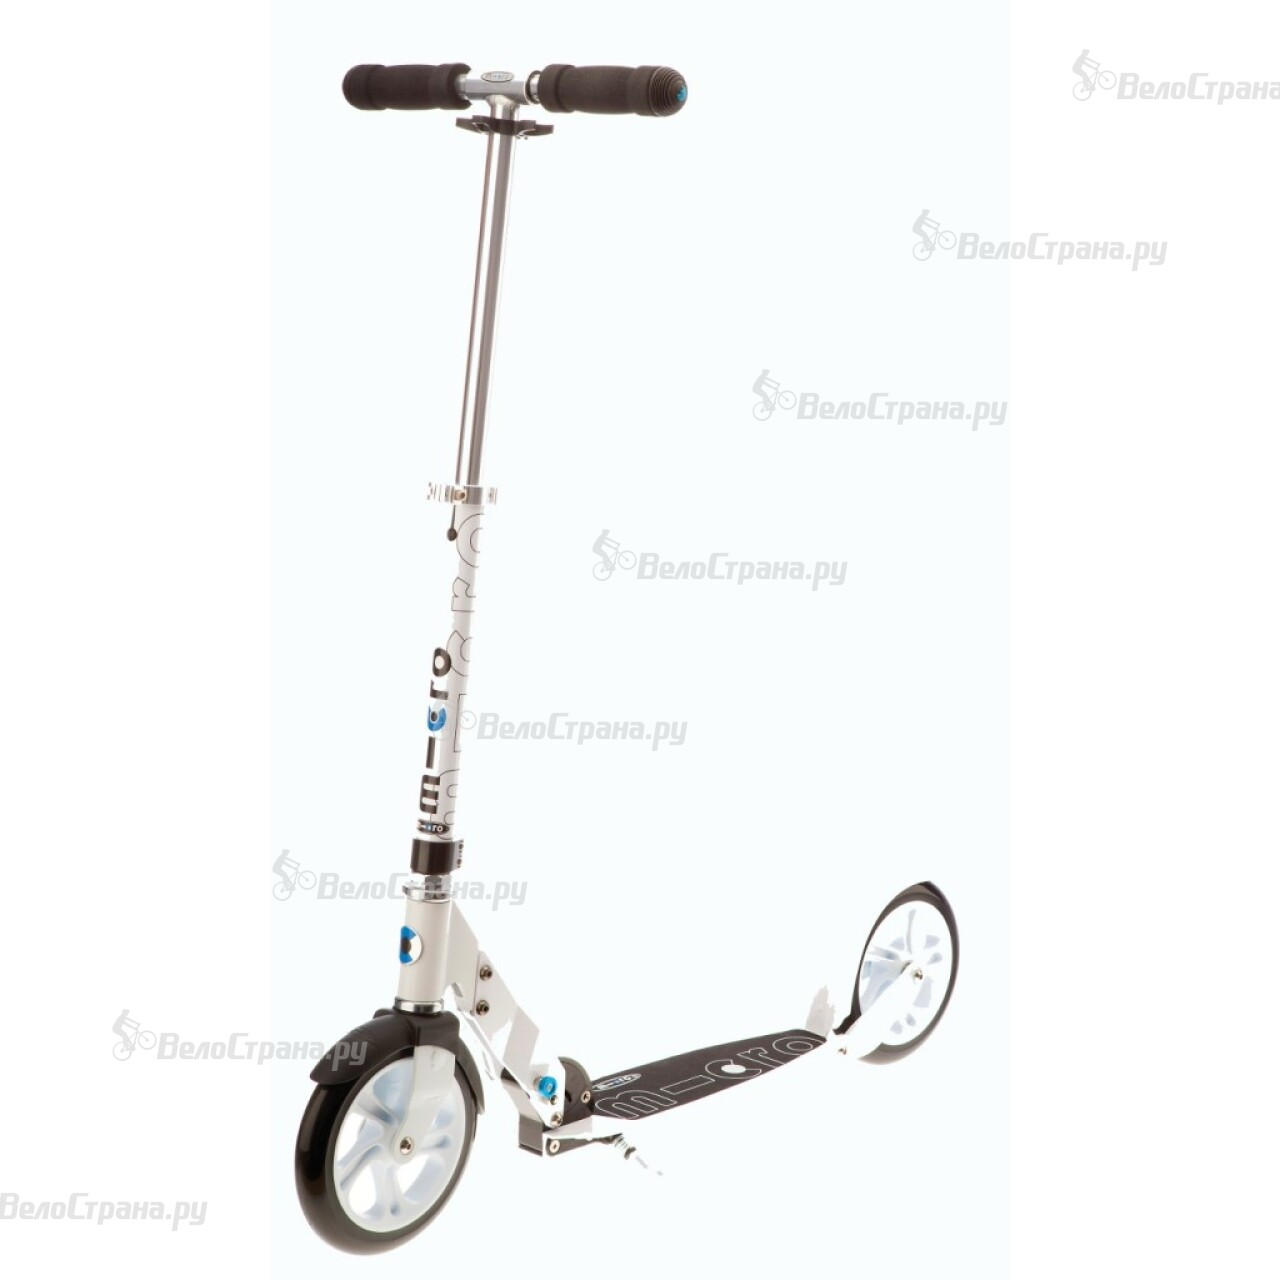 Самокат Micro SCOOTER WHITE самокат larsen scooter gss s2 001 n c n s